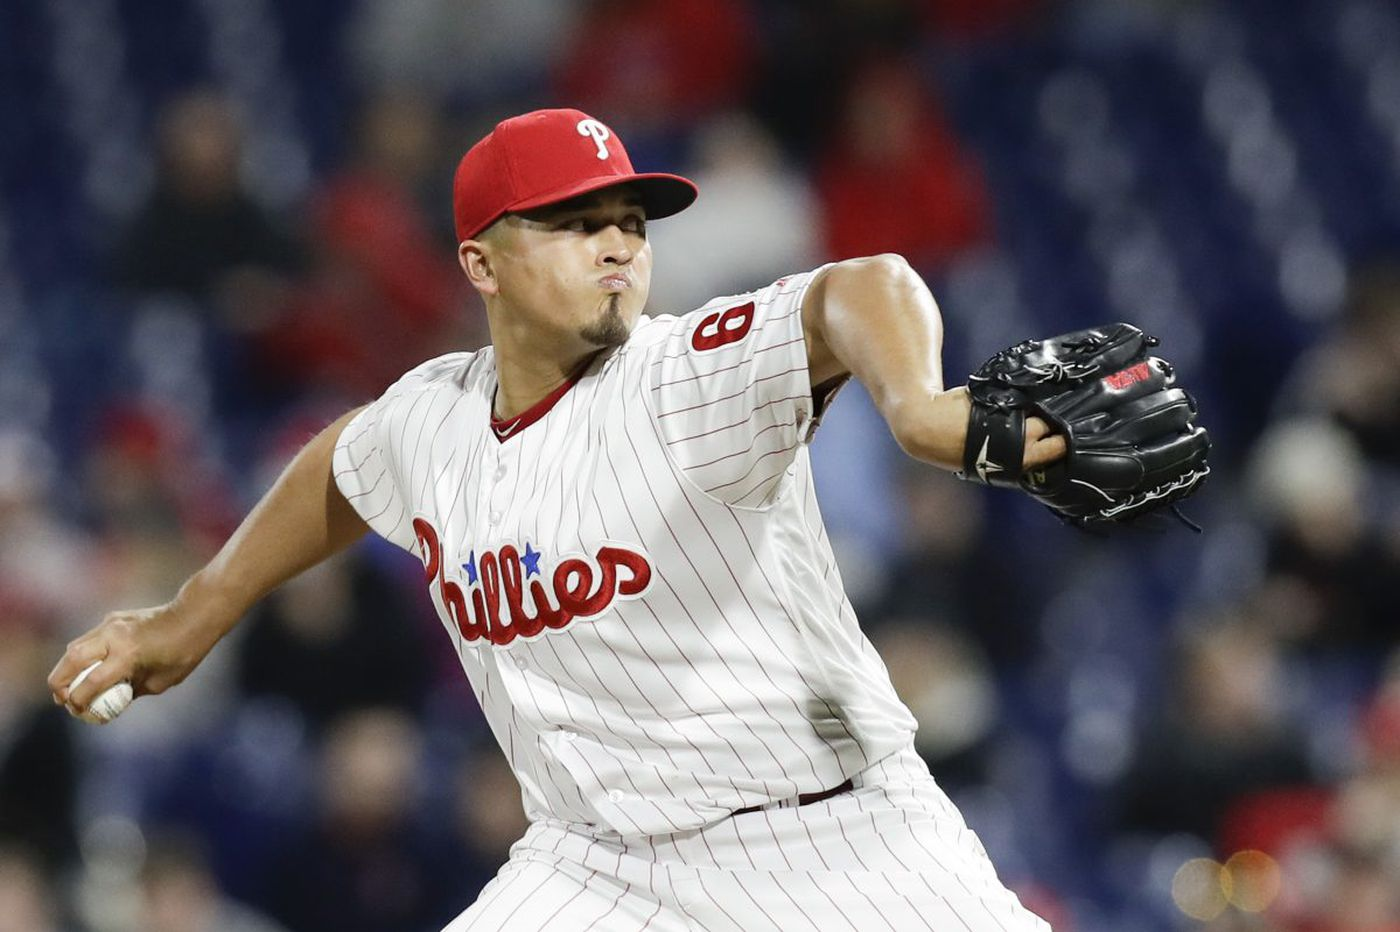 Phillies place reliever Victor Arano on the DL